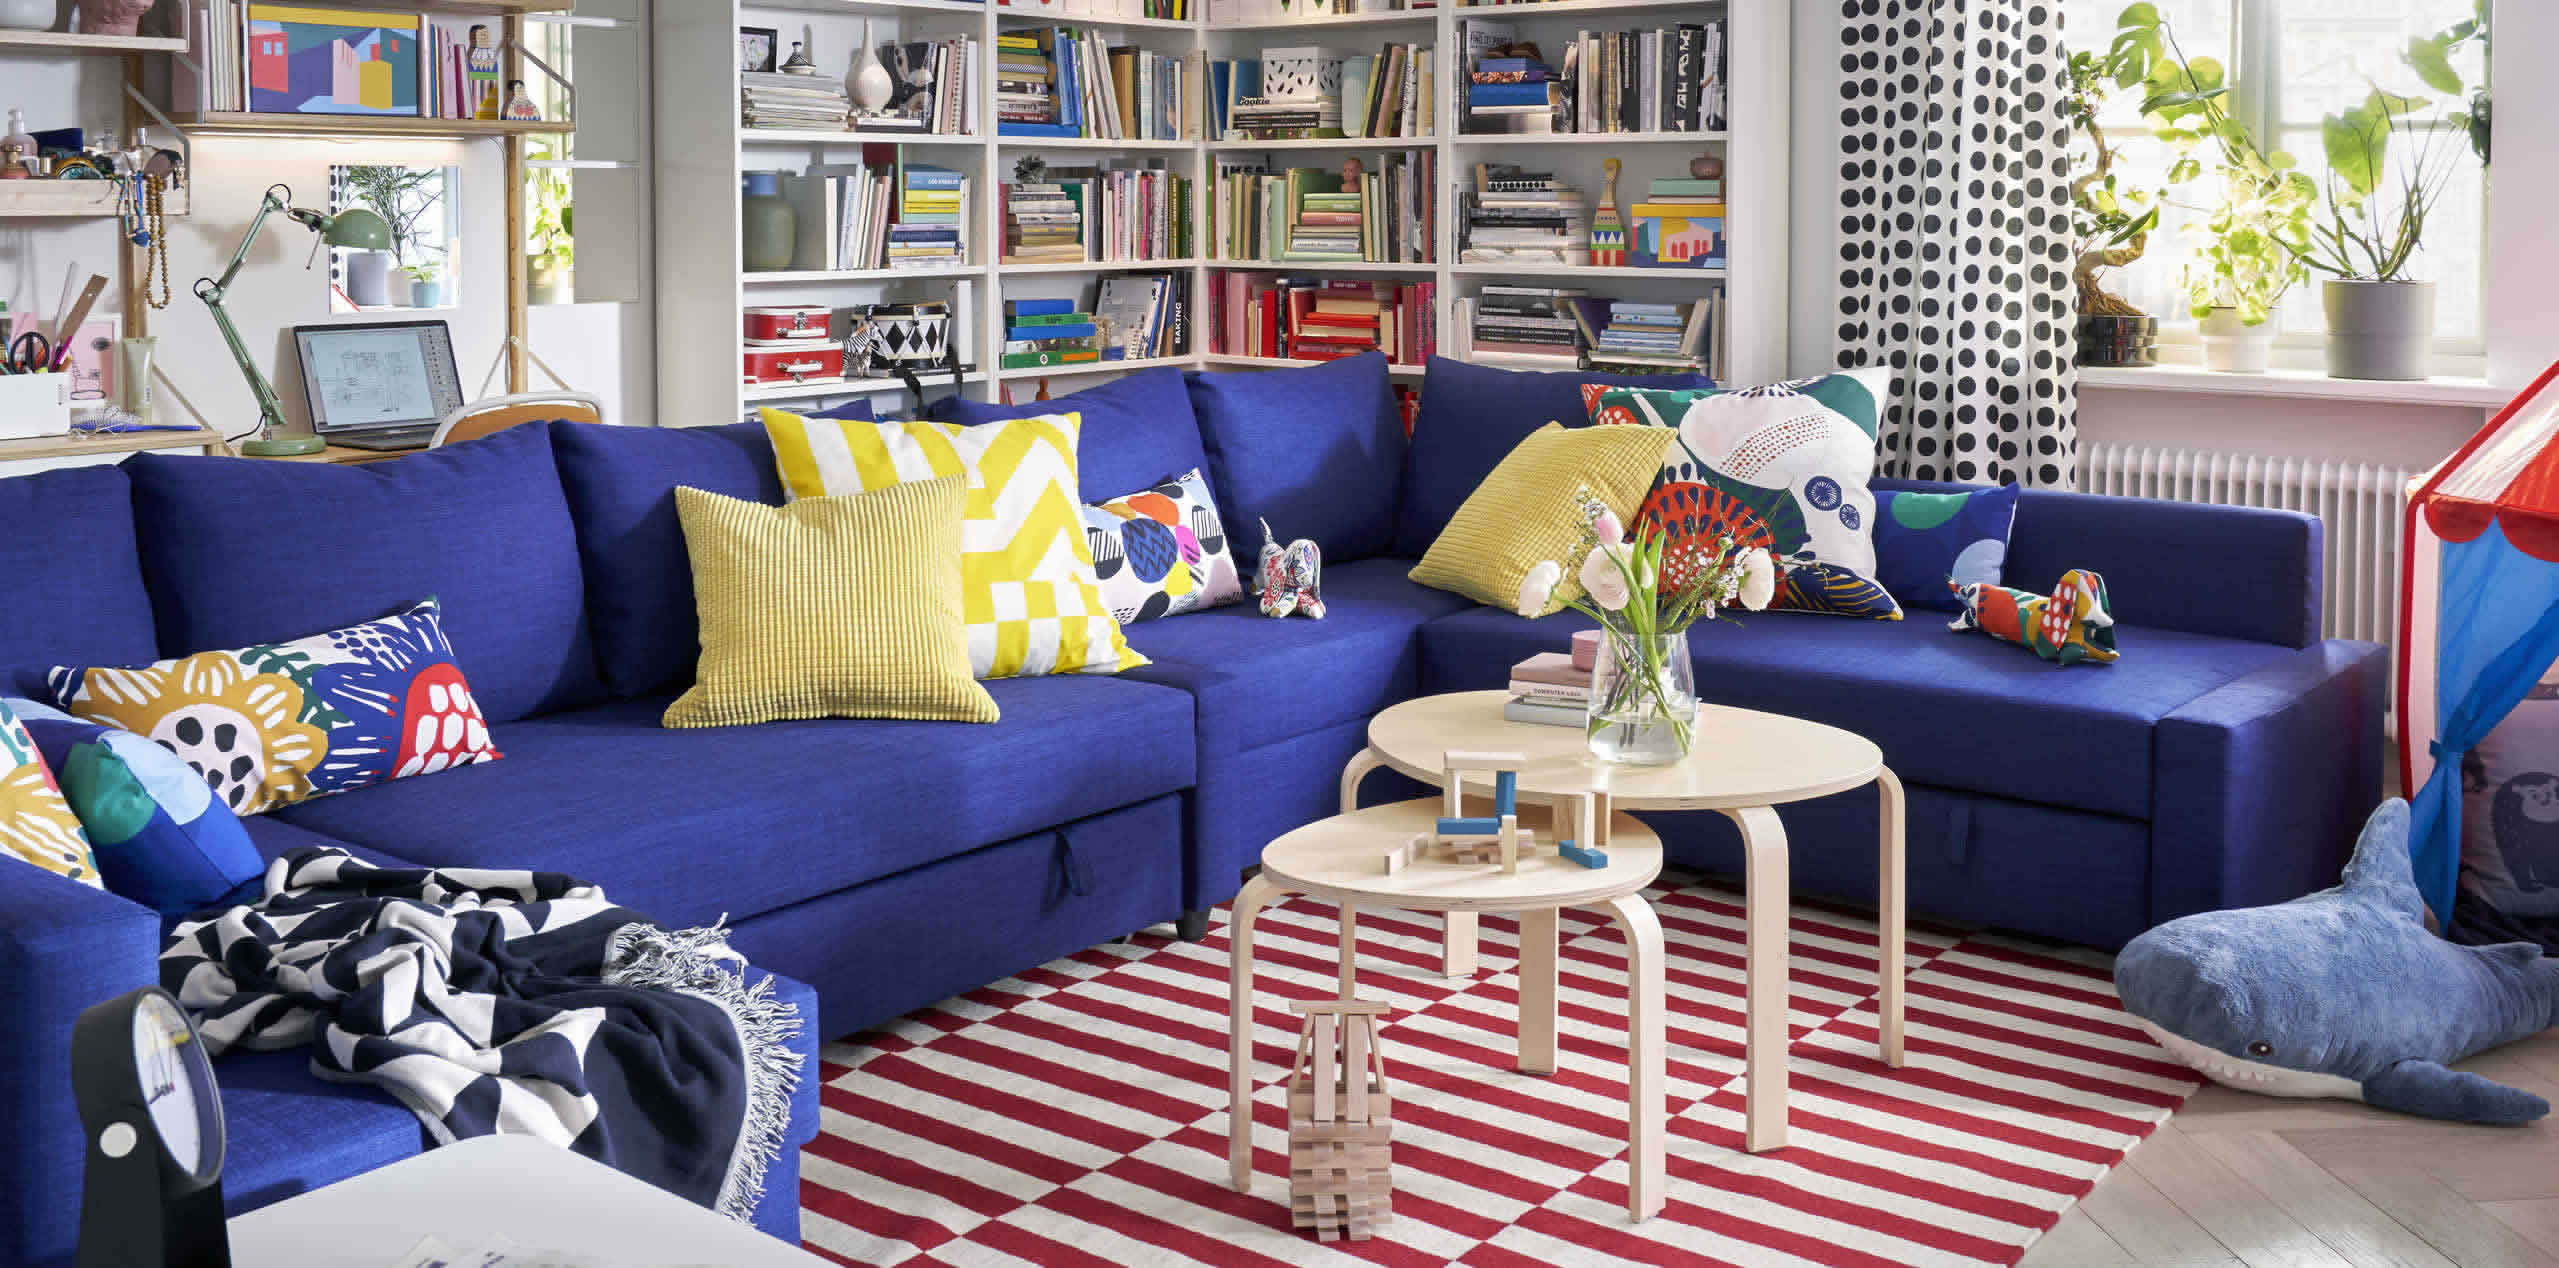 IKEA - 15% discount on living room furniture